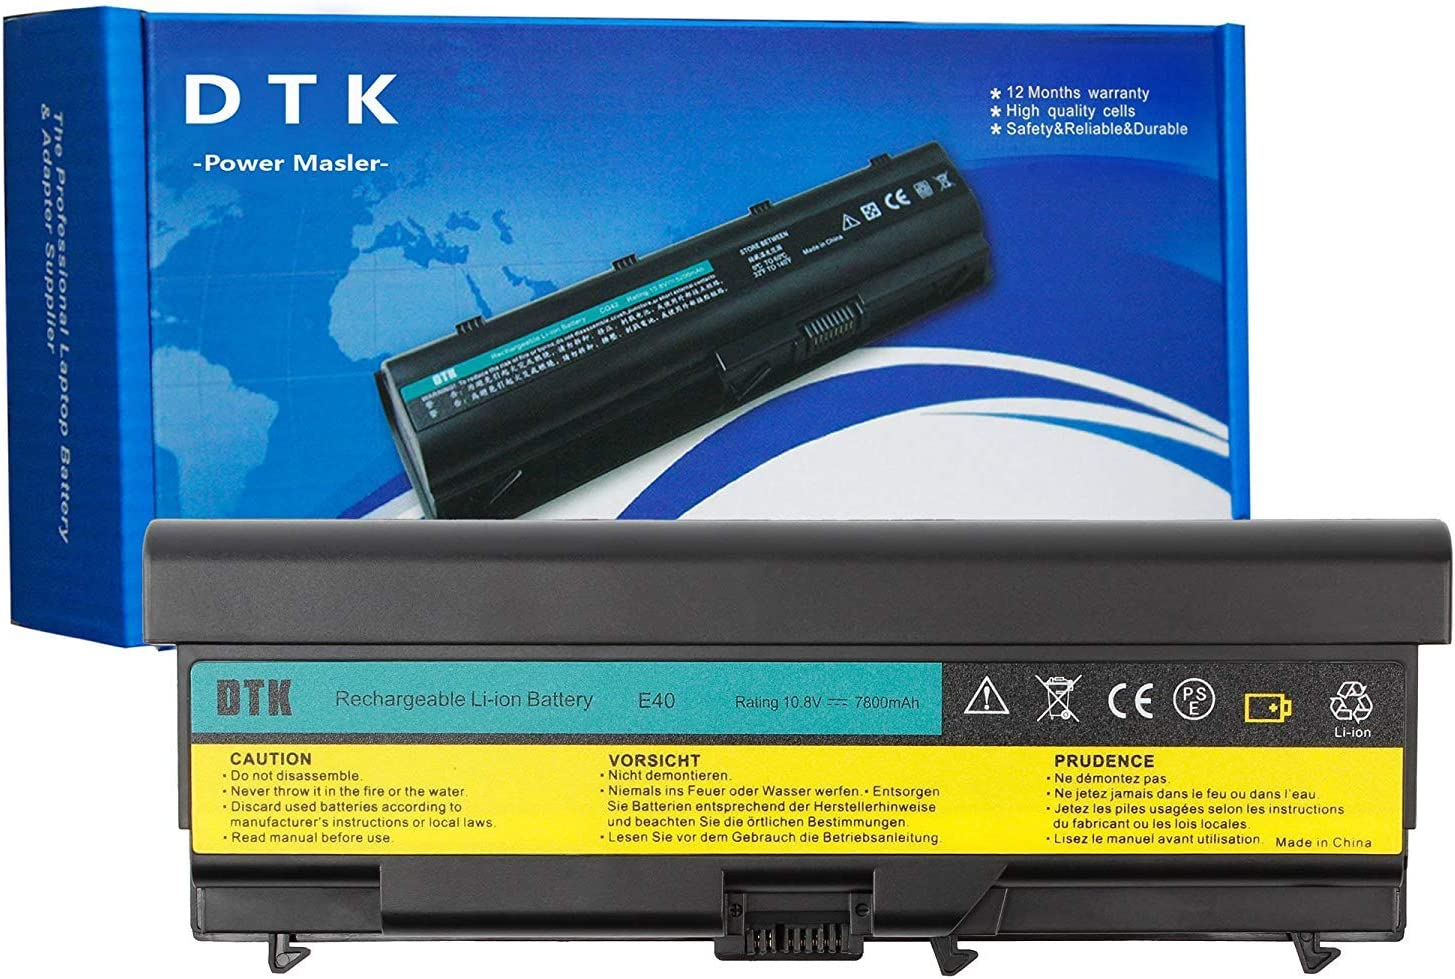 Dtk Extended Laptop Notebook Battery Replacement for Lenovo IBM Thinkpad E40 E50 0578 E420 E425 E520 E525 L410 L412 L420 L421 L510 L512 L520 Sl410 Sl510 T410 T420 T510 T520 W510 W520 10.8V 7800MAH